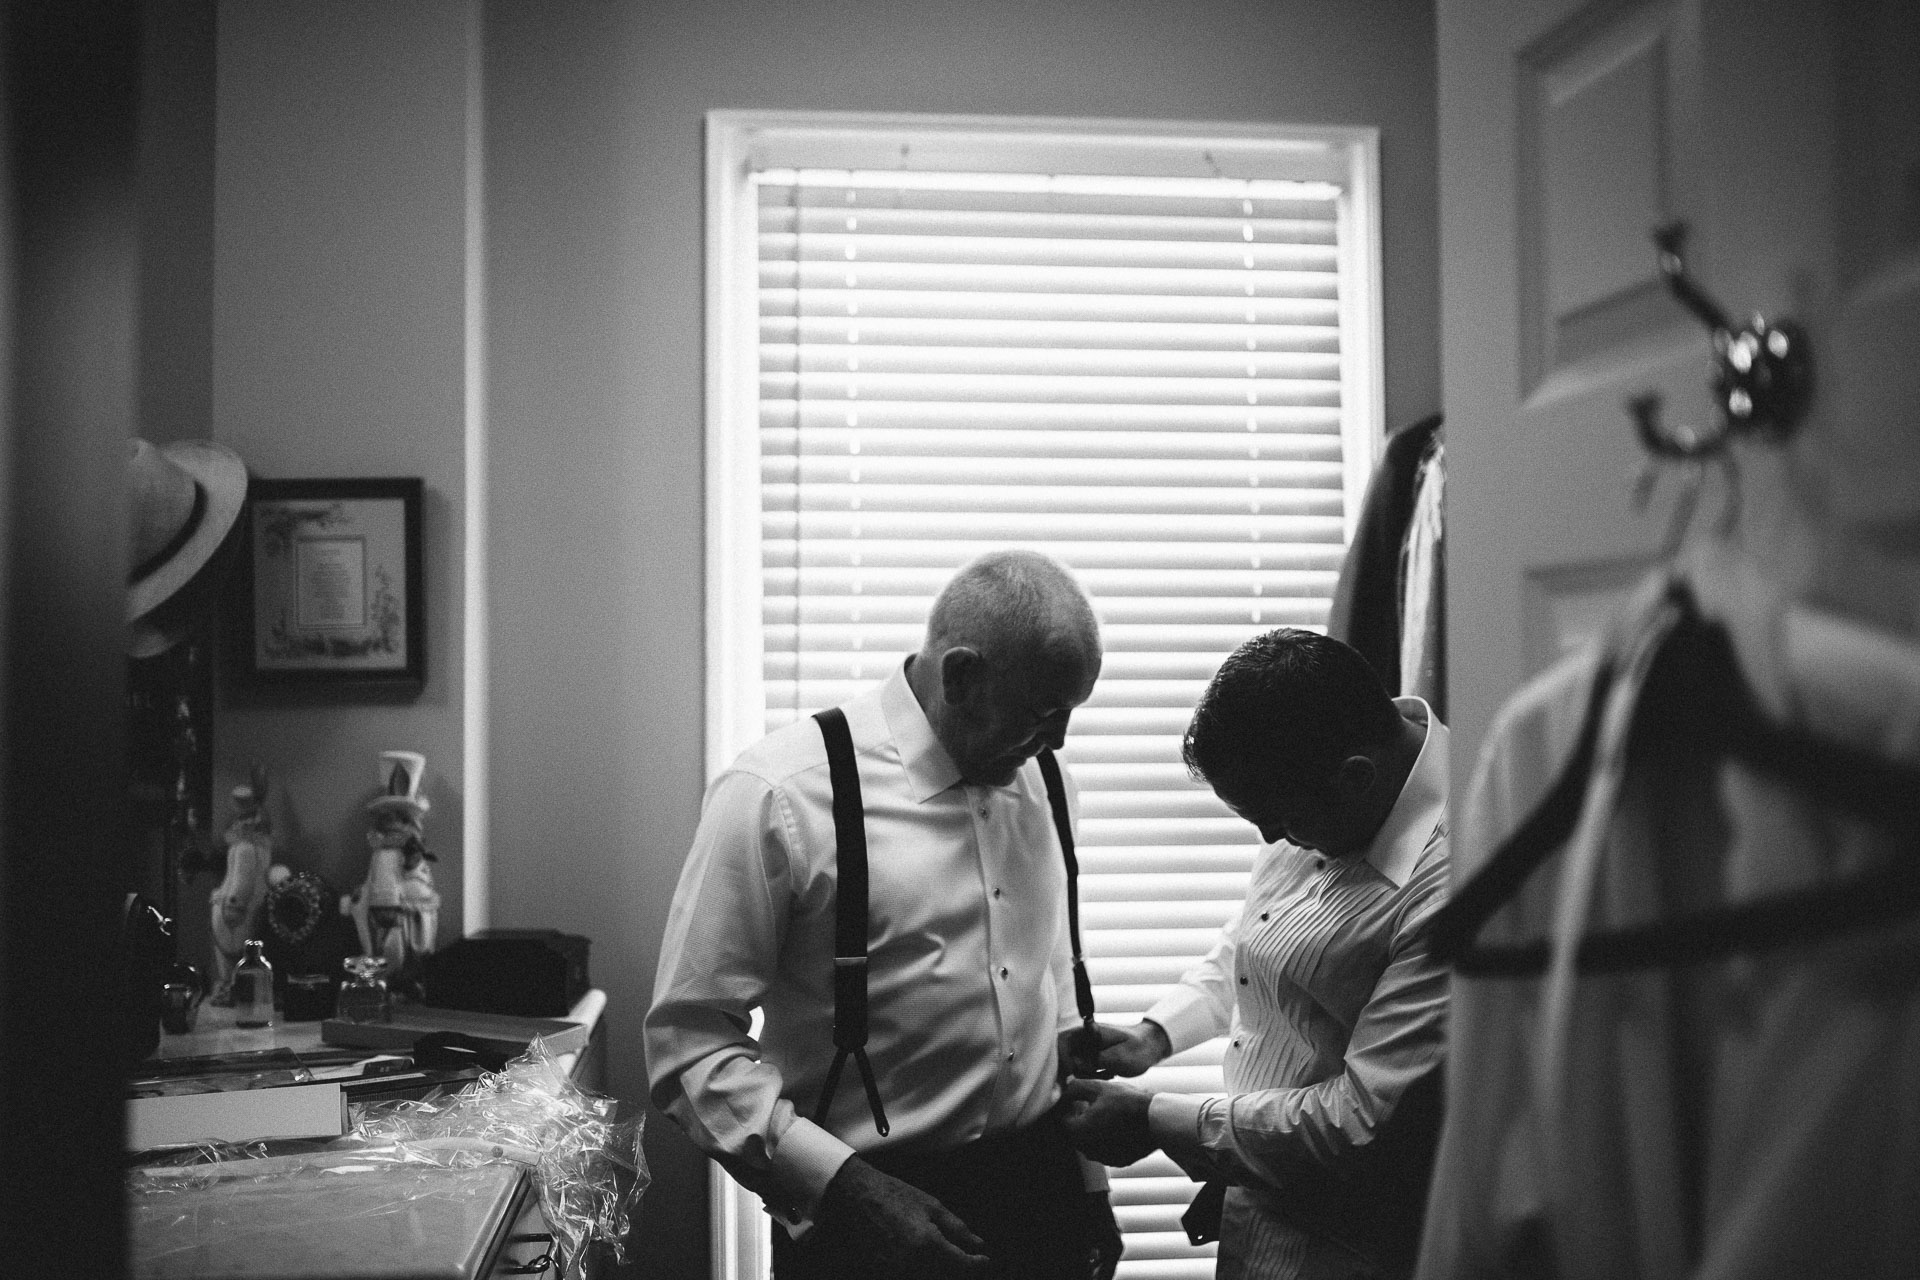 Shawna_Josh_Wedding_Easton_Maryland_JeanLaurentGaudy_043